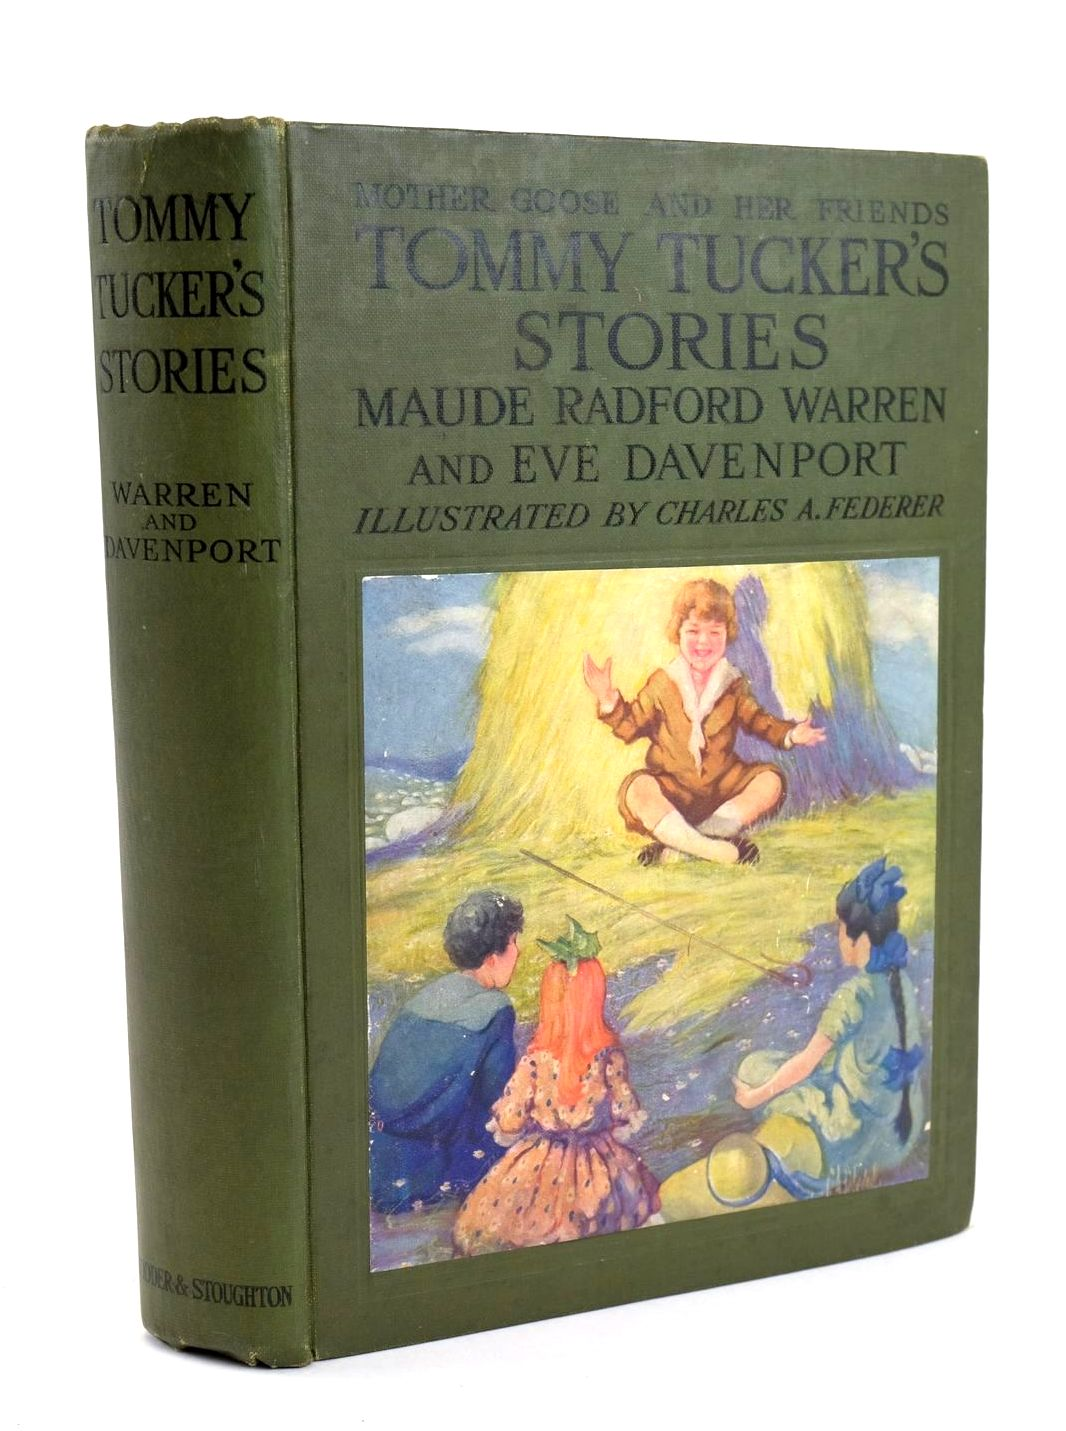 Photo of MOTHER GOOSE AND HER FRIENDS TOMMY TUCKER'S STORIES written by Warren, Maude Radford Davenport, Eve illustrated by Federer, Charles A. published by Hodder & Stoughton (STOCK CODE: 1319204)  for sale by Stella & Rose's Books